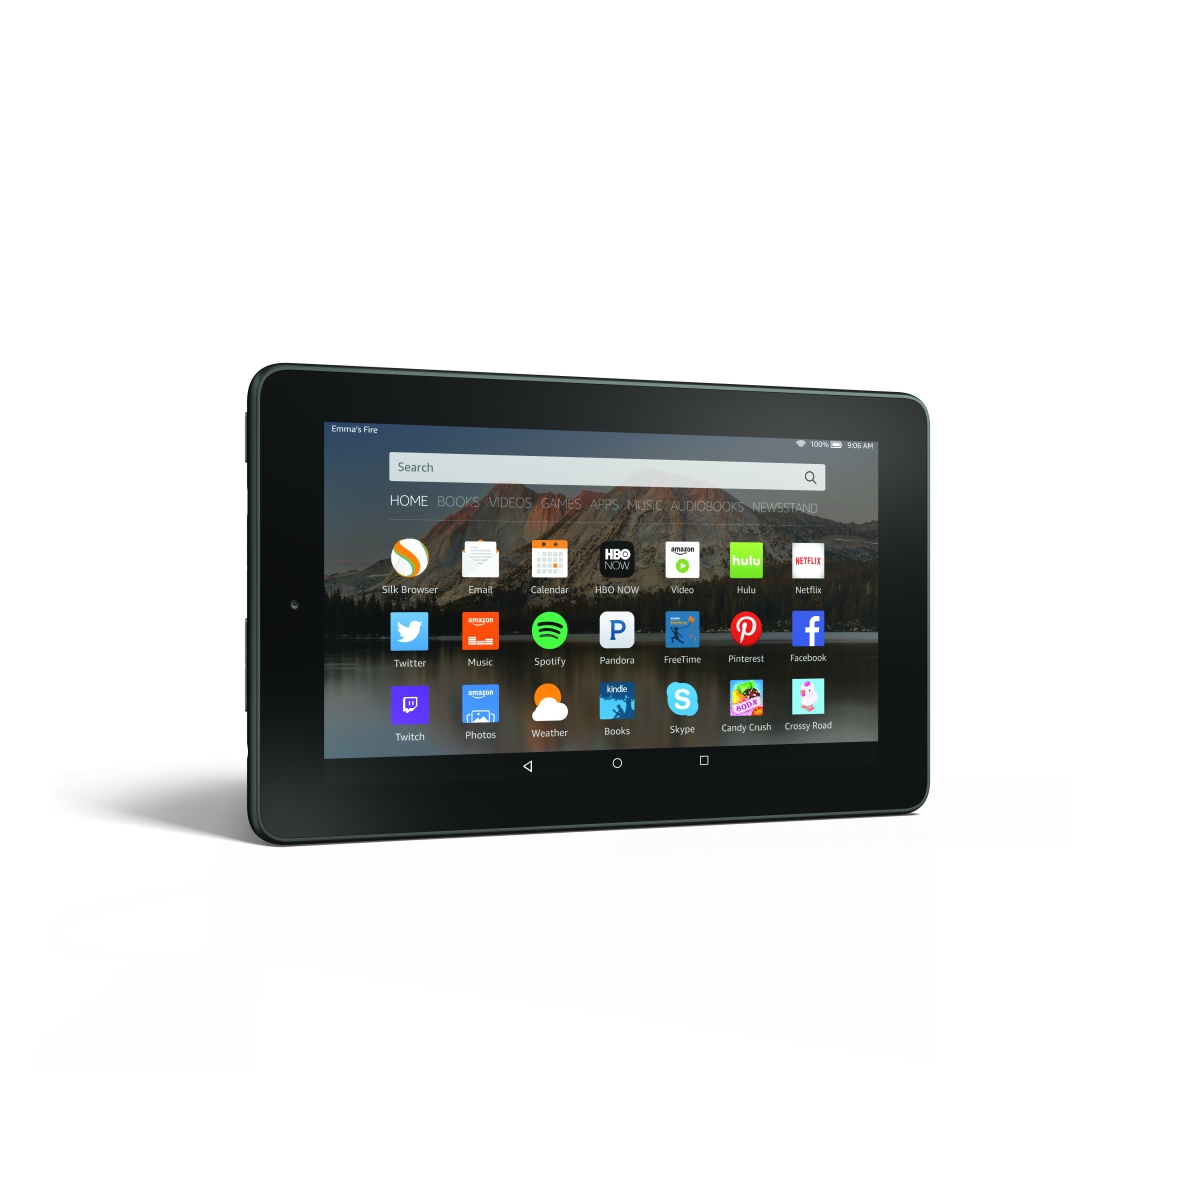 Amazon Fire 7 tablet horizontal